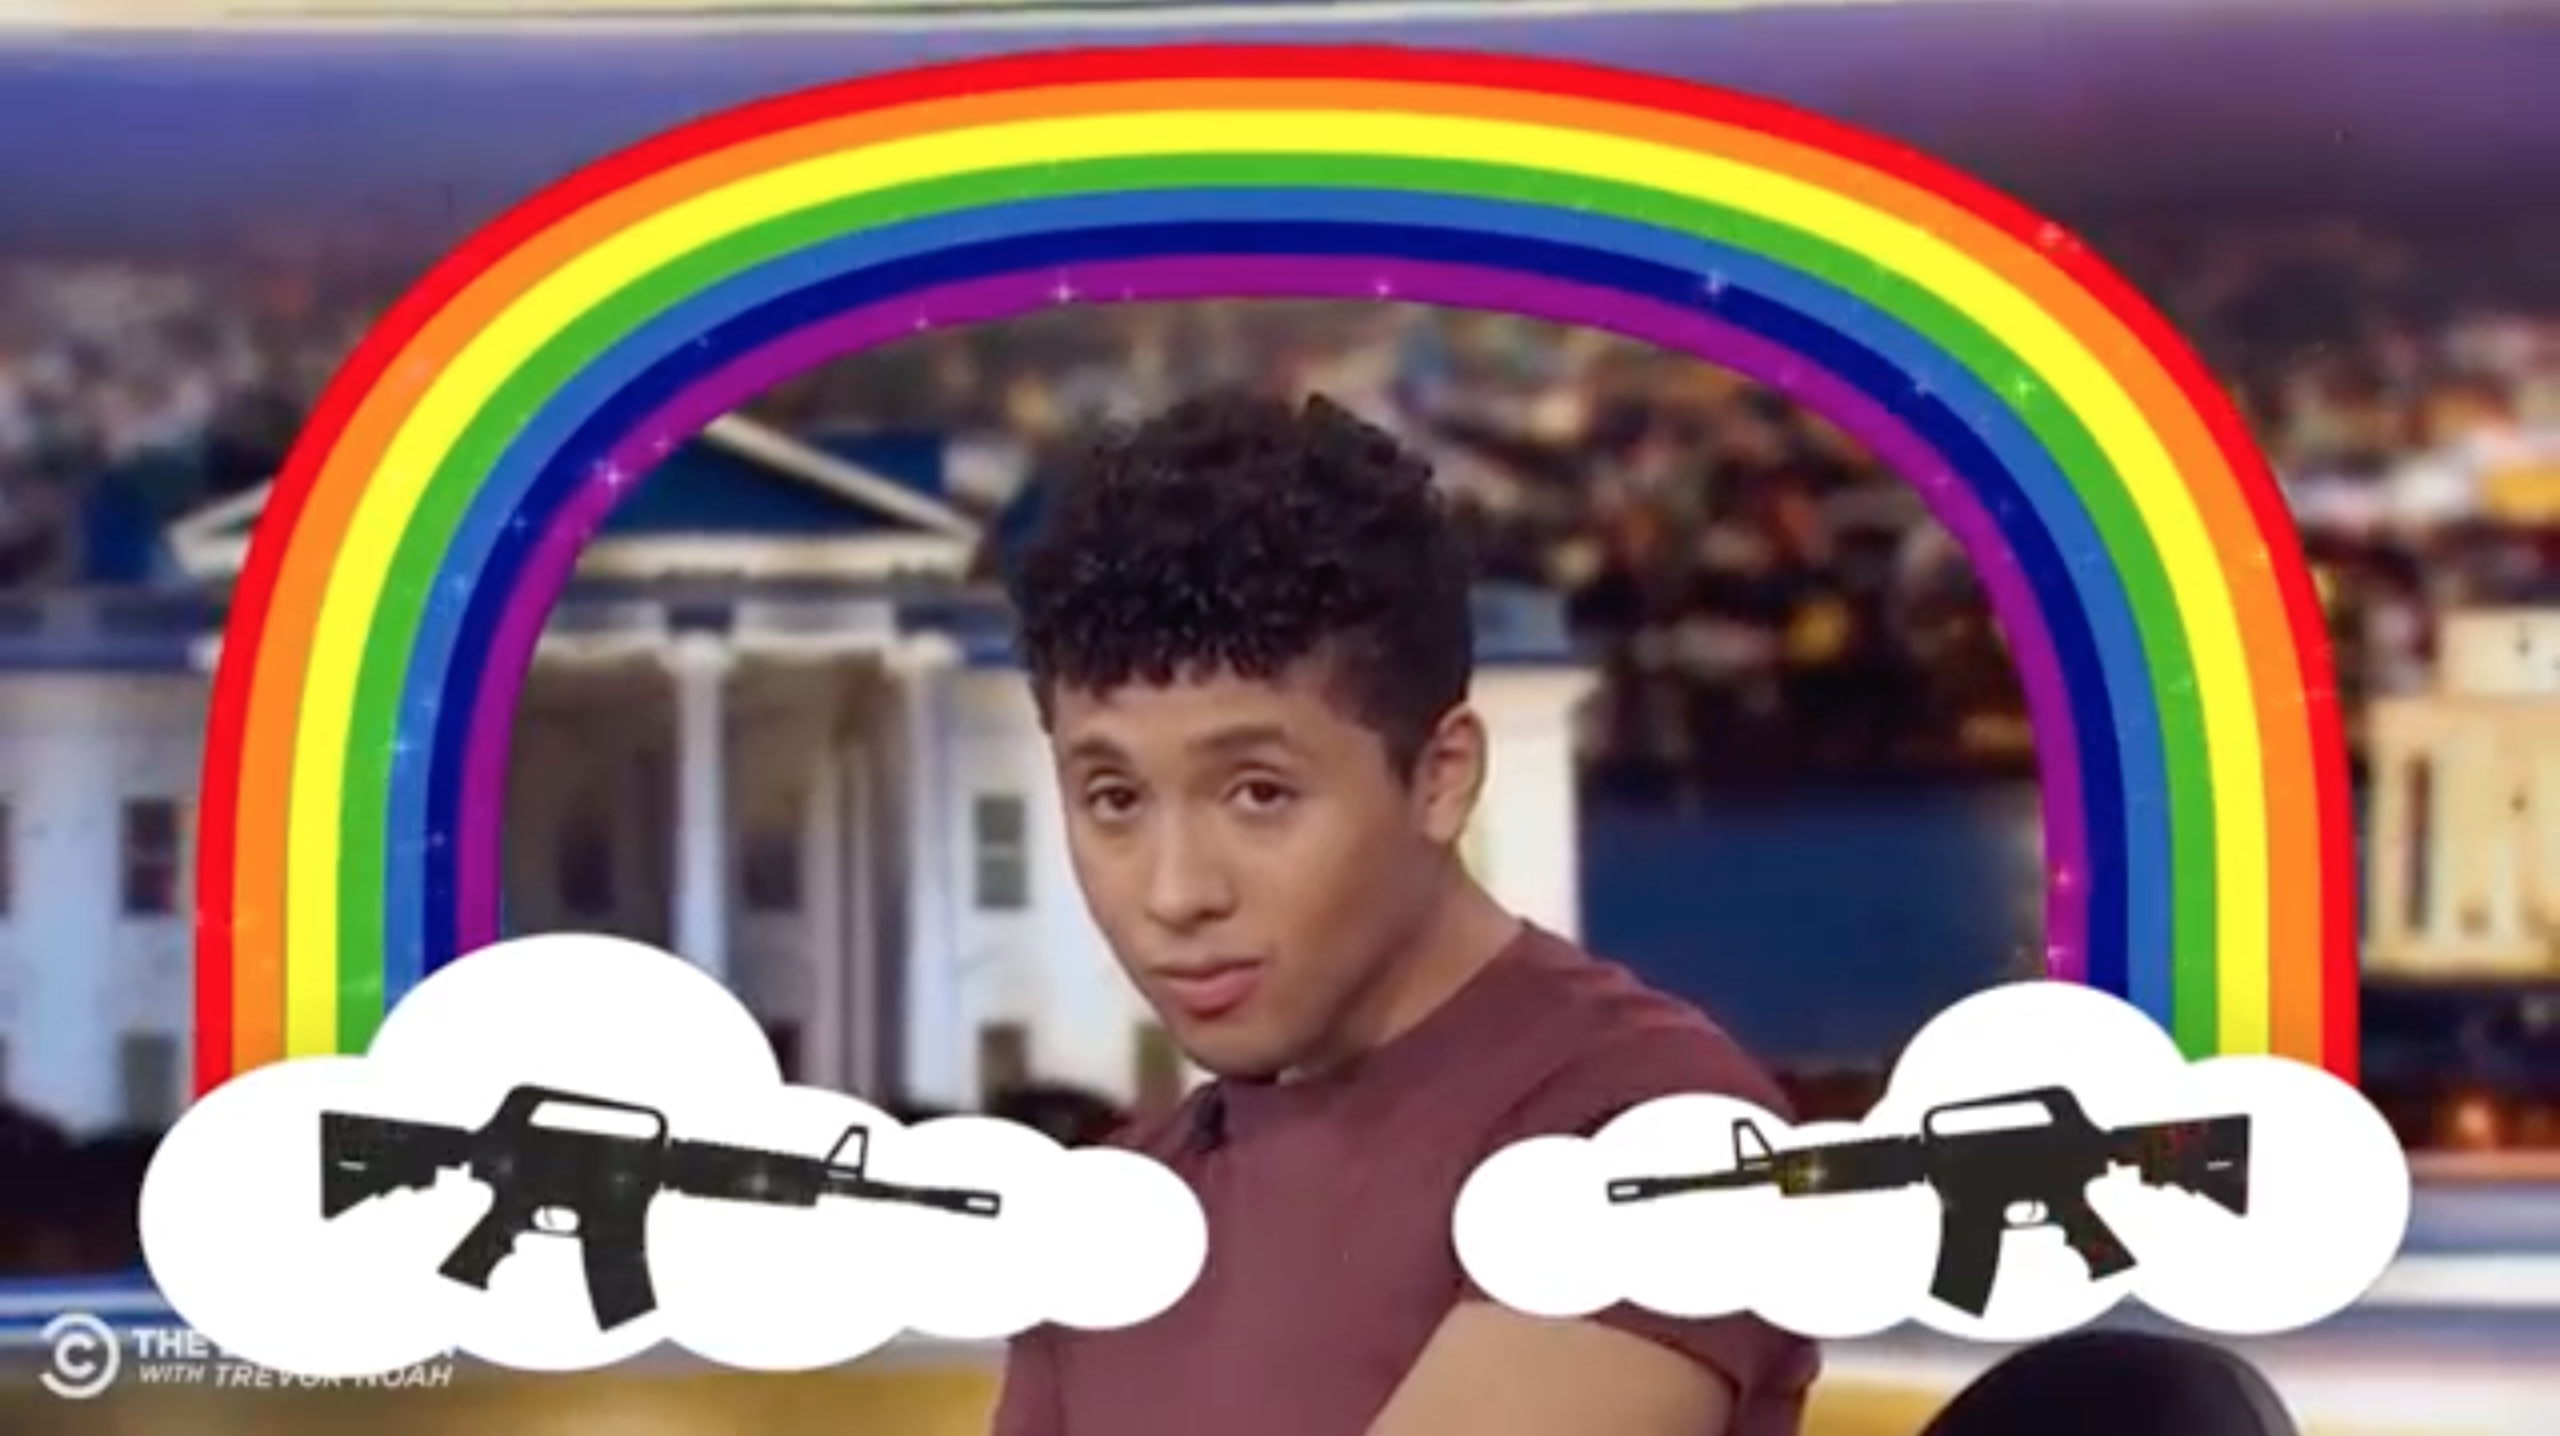 Gay comedian Jaboukie Young-White pitched quite the idea to curb escalating gun violence (YouTube/Comedy Central)